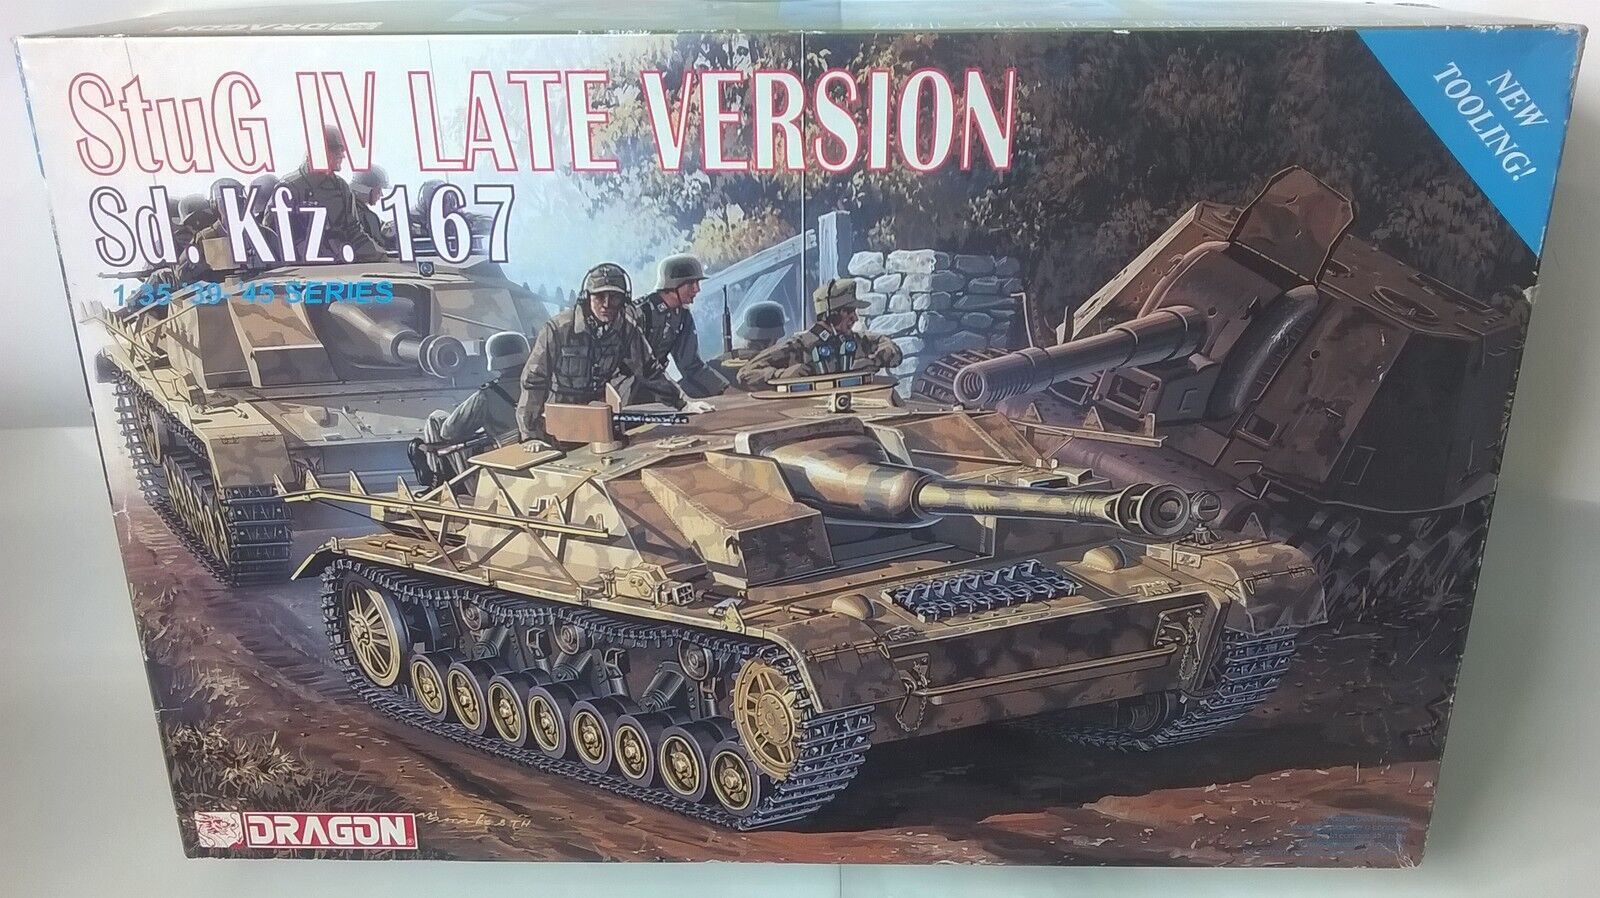 KIT DRAGON 1 35 autoRO ARMATO  STUG IV LATE VERSION Sd.kfz.167   ART  6043